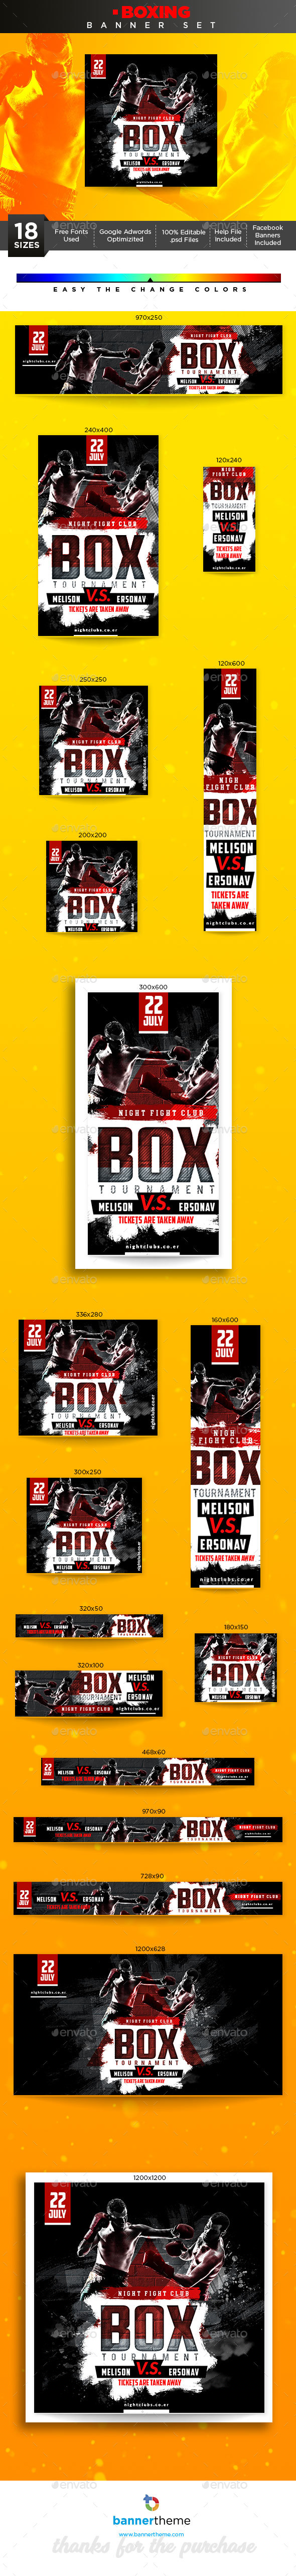 Boxing Banner - Banners & Ads Web Elements